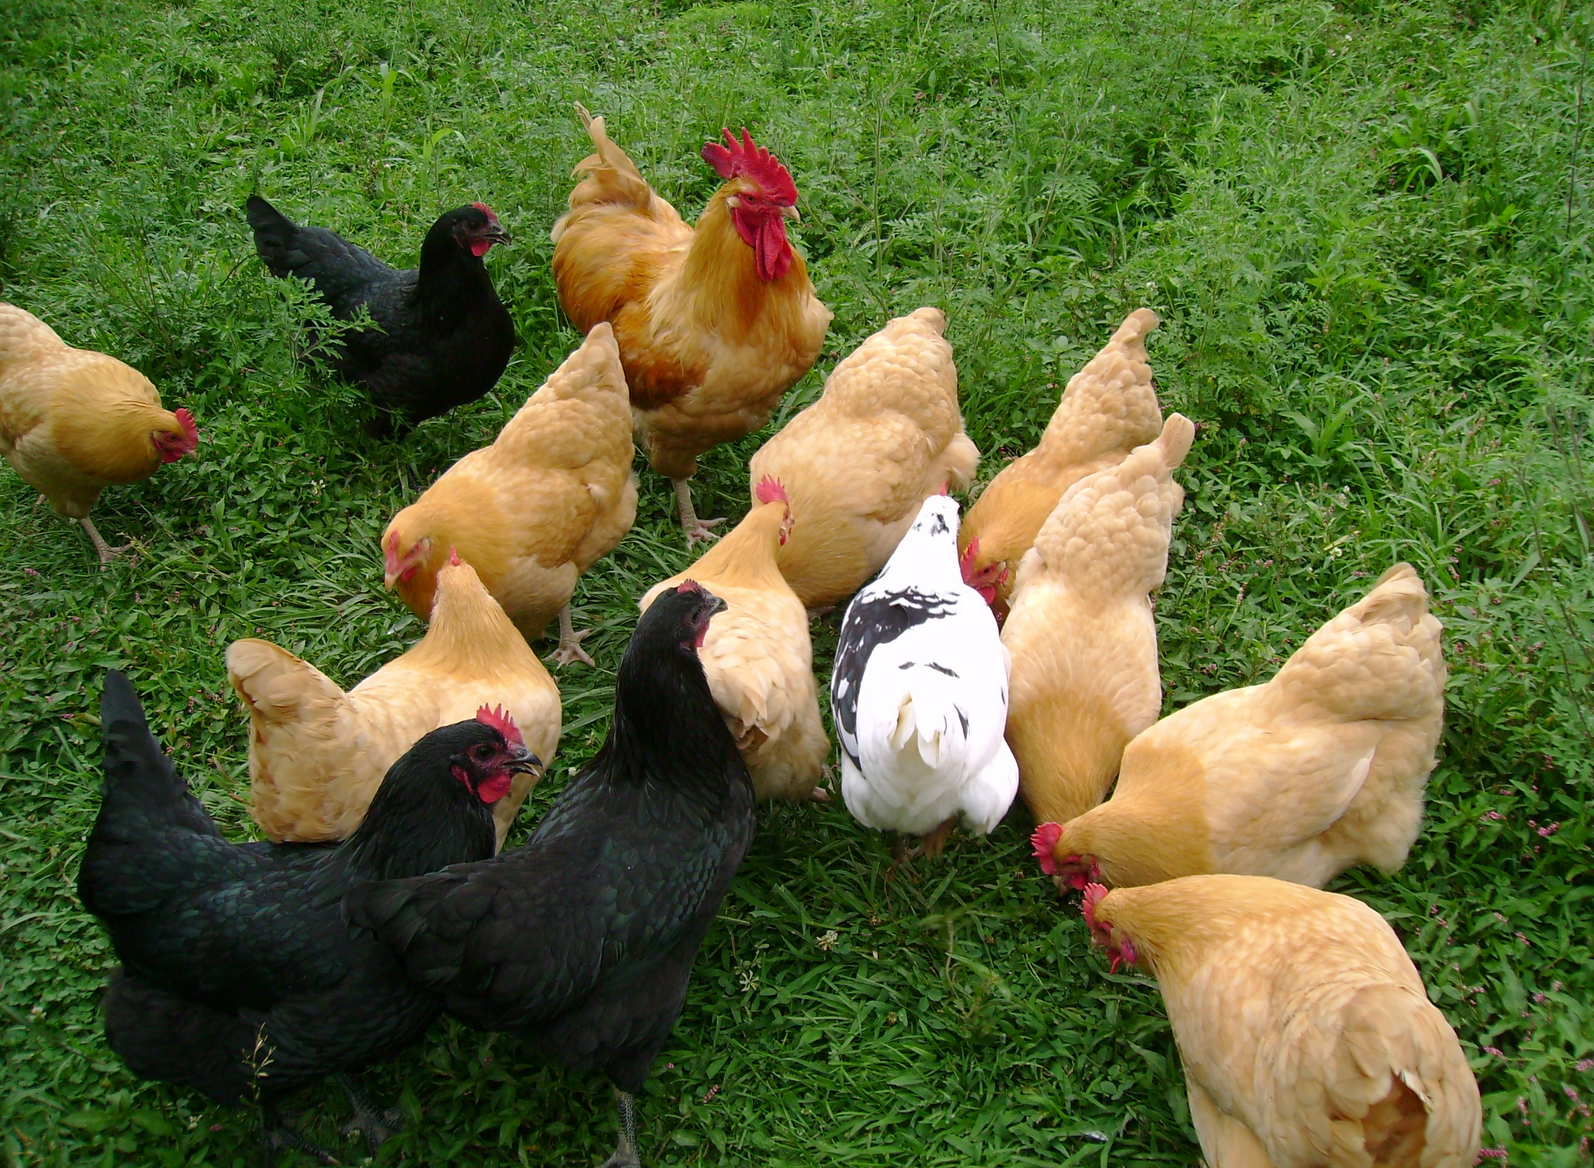 Chicken breeds for eggs - When To Expect Your Chicken To Lay Its First Egg